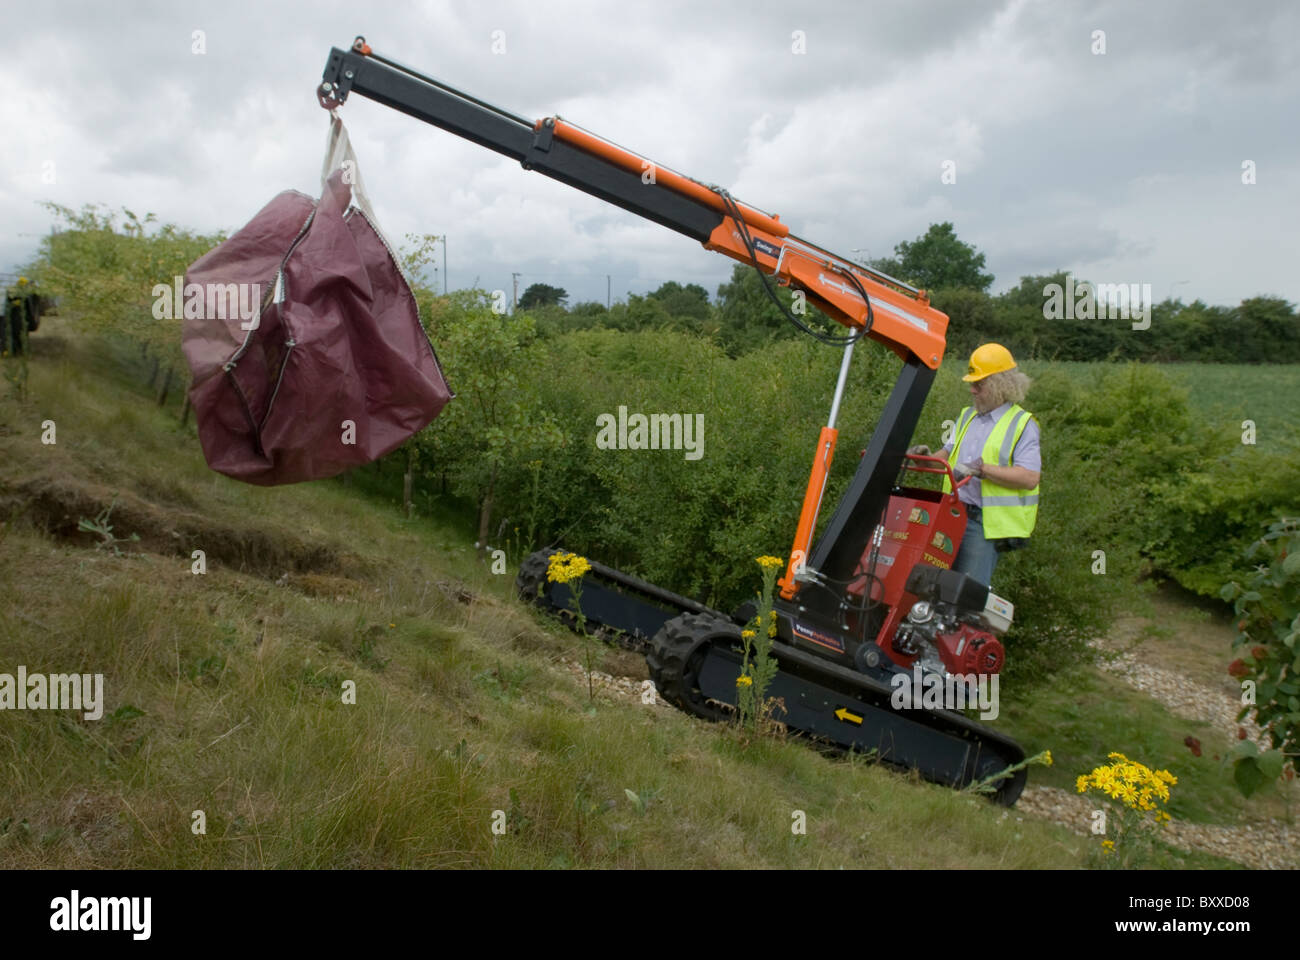 A Hinowa Mammut Verde caterpillar with hoist is put through its paces clearing fly tipped rubbish UK - Stock Image